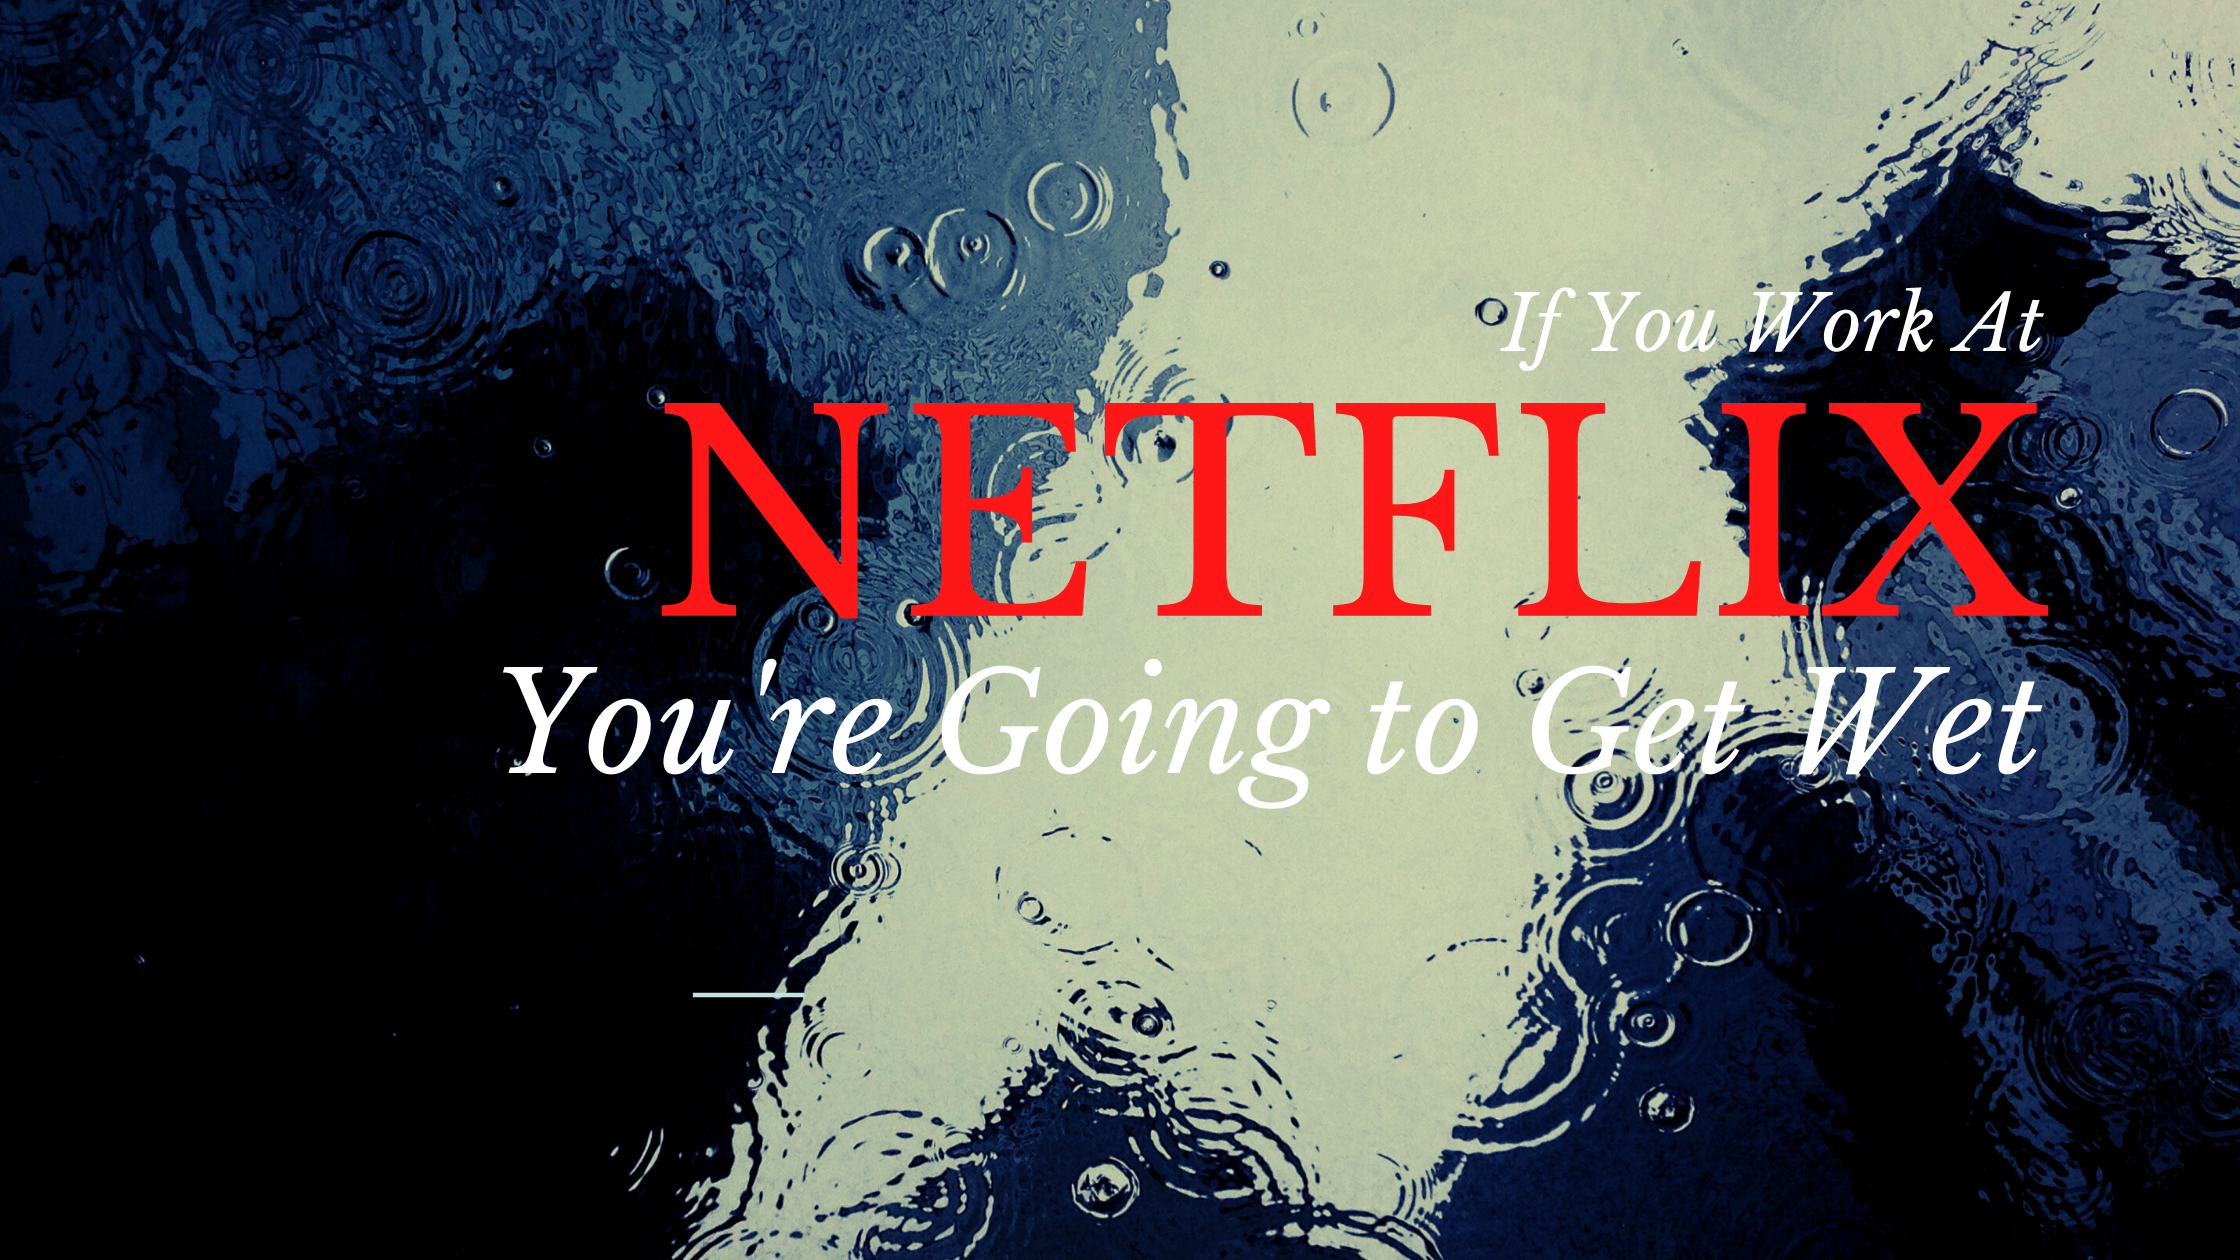 If You Work At Netflix, You're Going To Get Wet